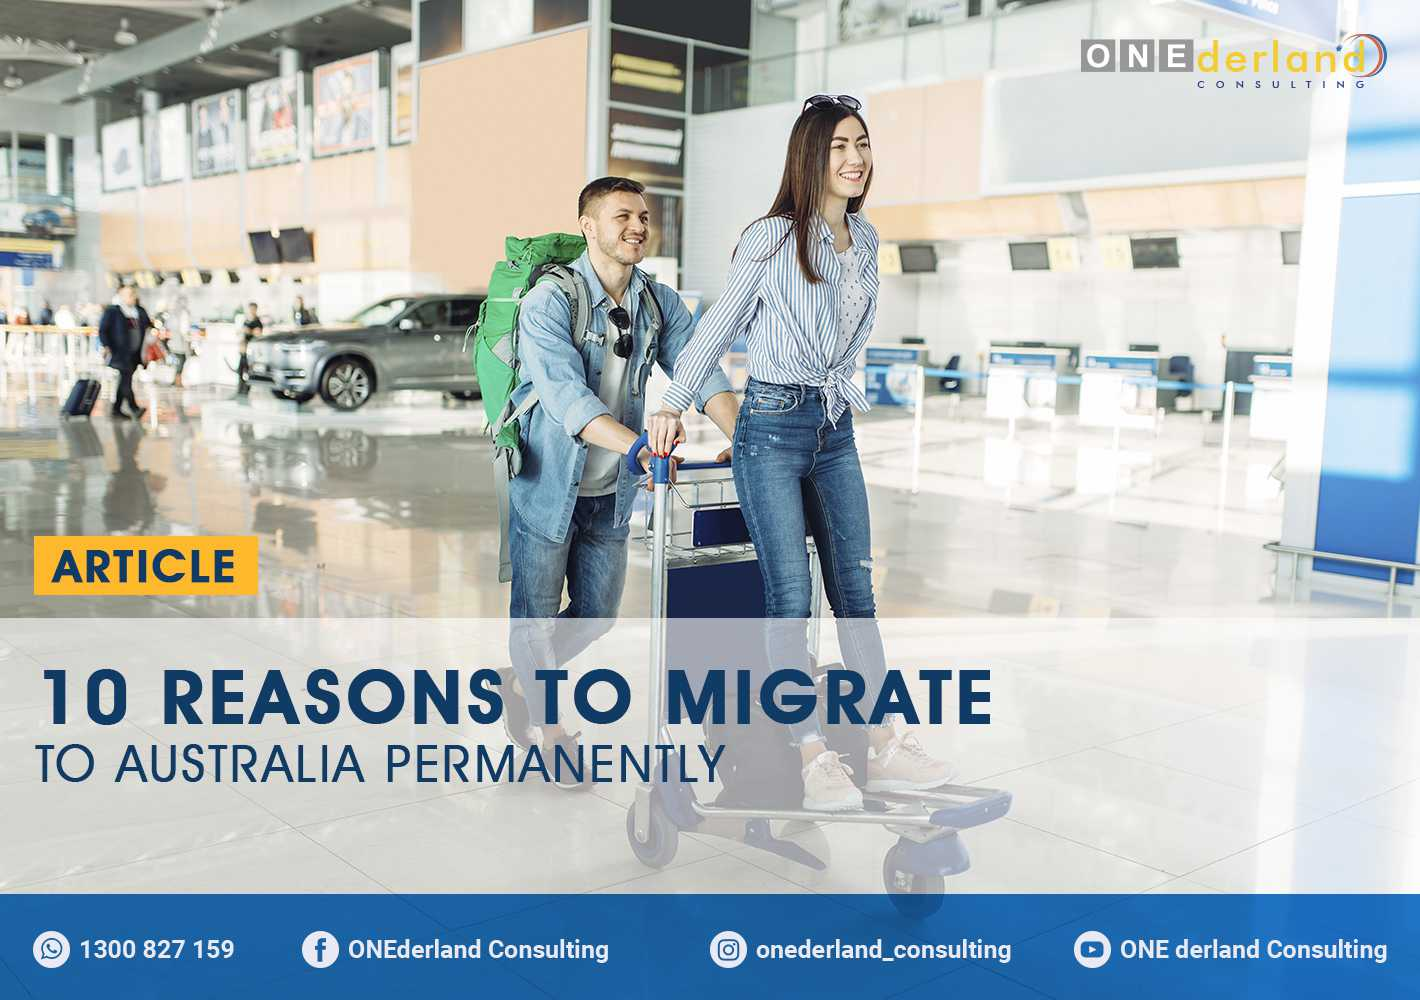 10 Reasons to Migrate to Australia Permanently